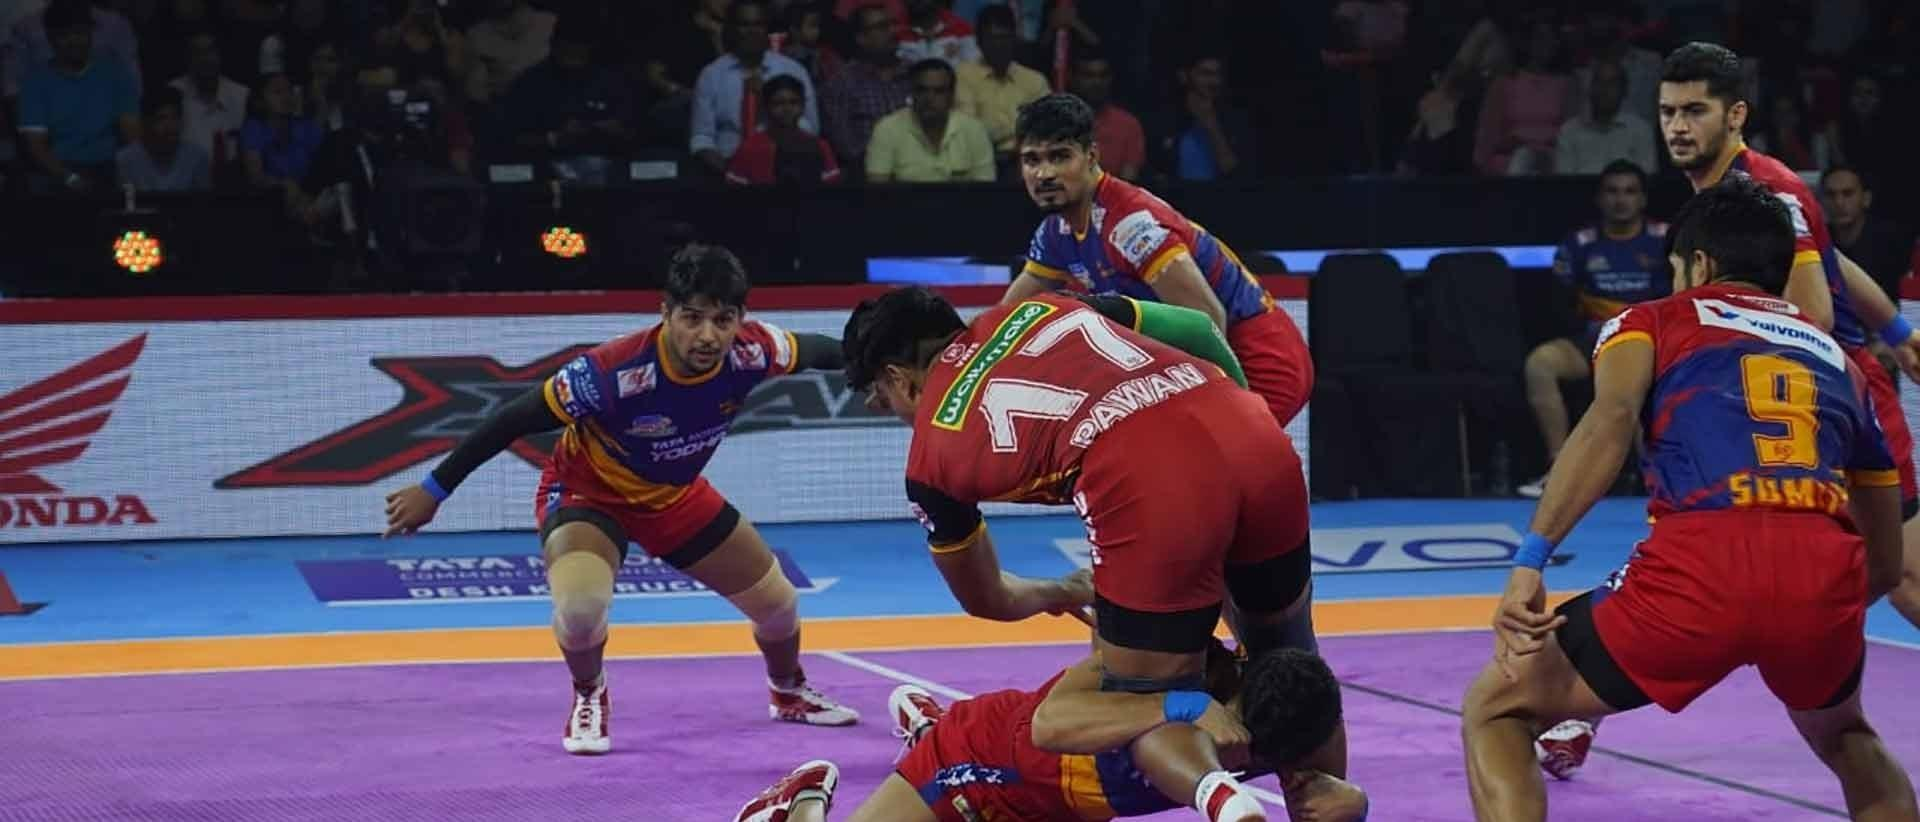 Shrikant, Monu power UP to victory over the Bulls